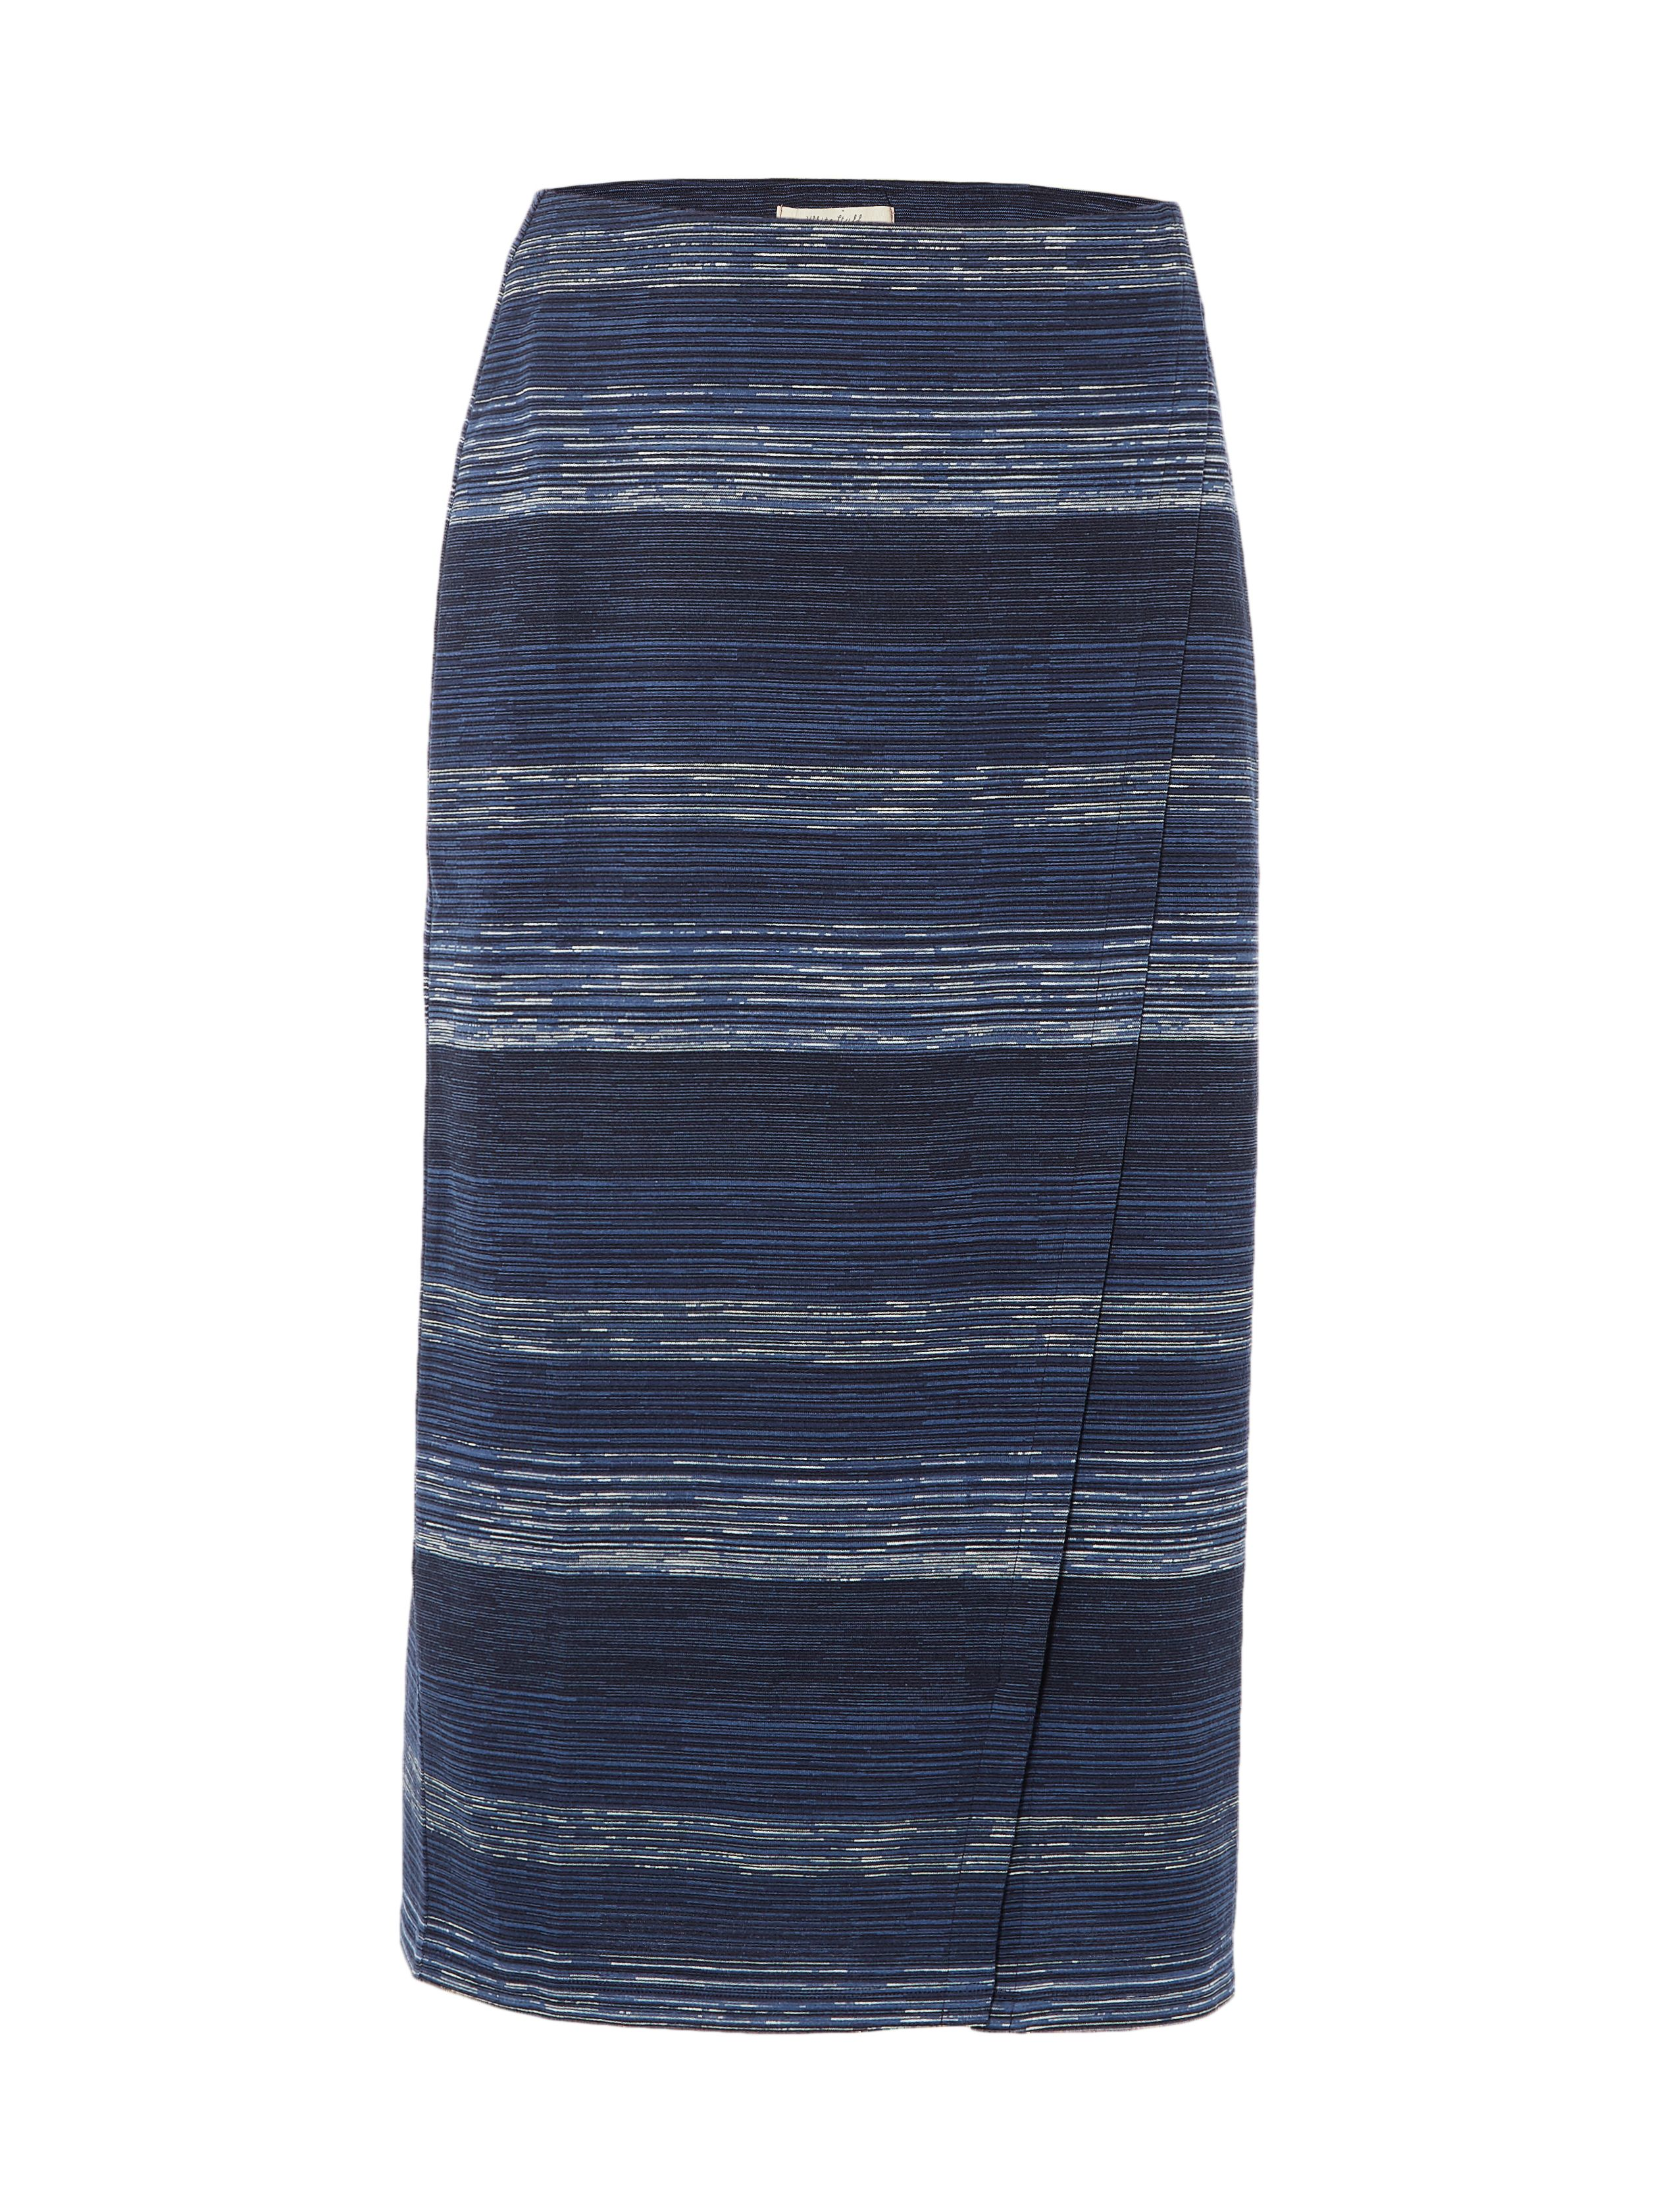 White Stuff Gradient Jersey Skirt, Blue